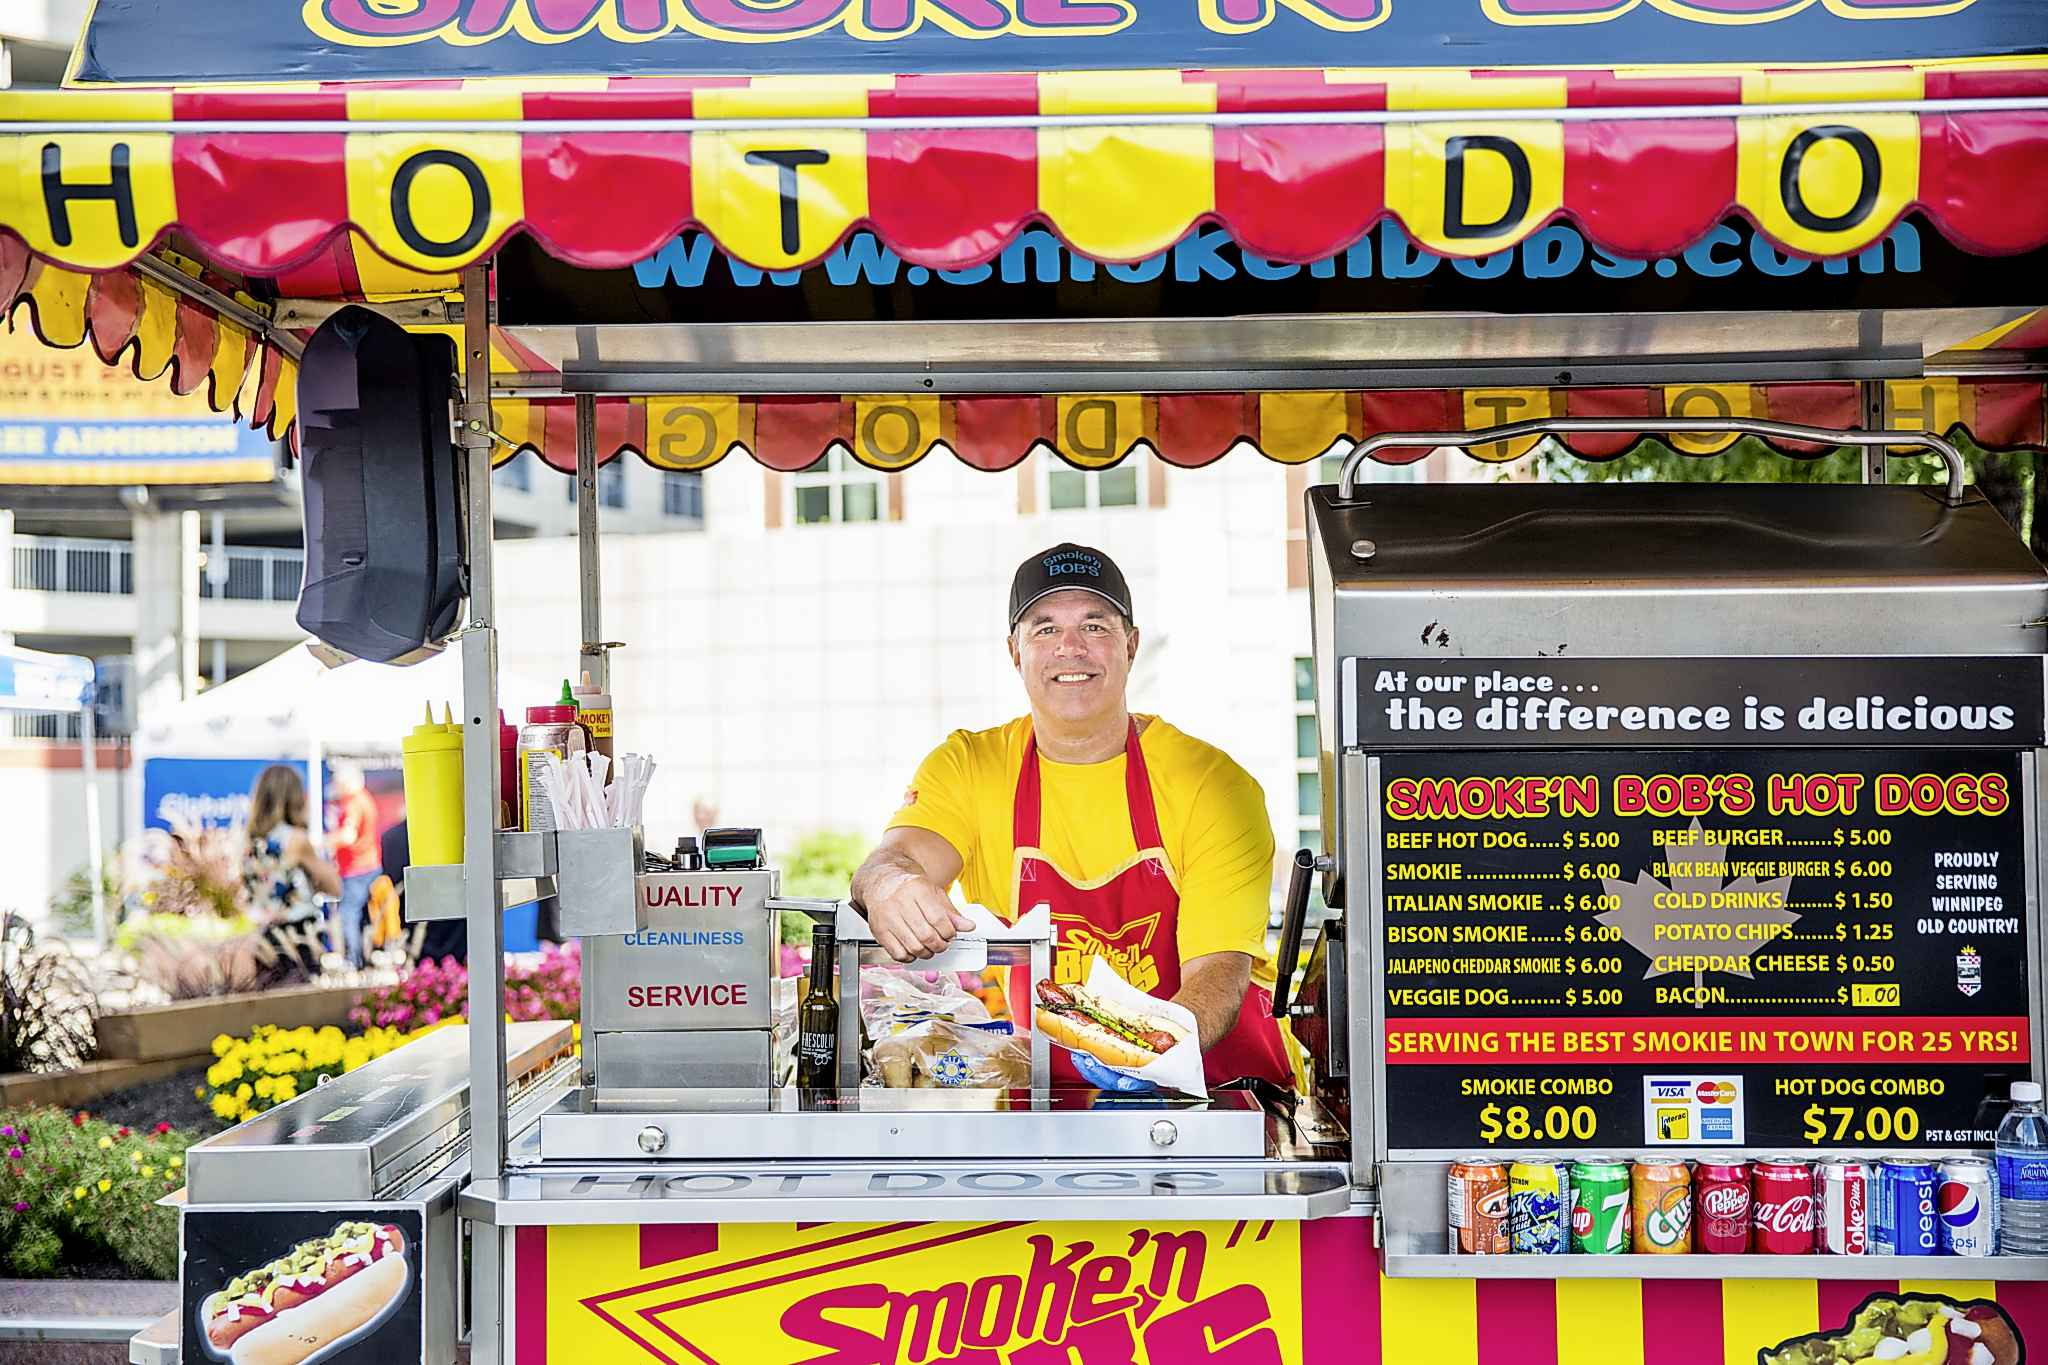 MIKAELA MACKENZIE / WINNIPEG FREE PRESS</p><p>Darren Yewchyn, the owner of Smoke'n Bob's Hot Dogs, holds a $100 smokie made from Wagyu beef (the best available) and topped with real gold leaf, which he'll be selling to raise money for Riverview Health Centre.</p>